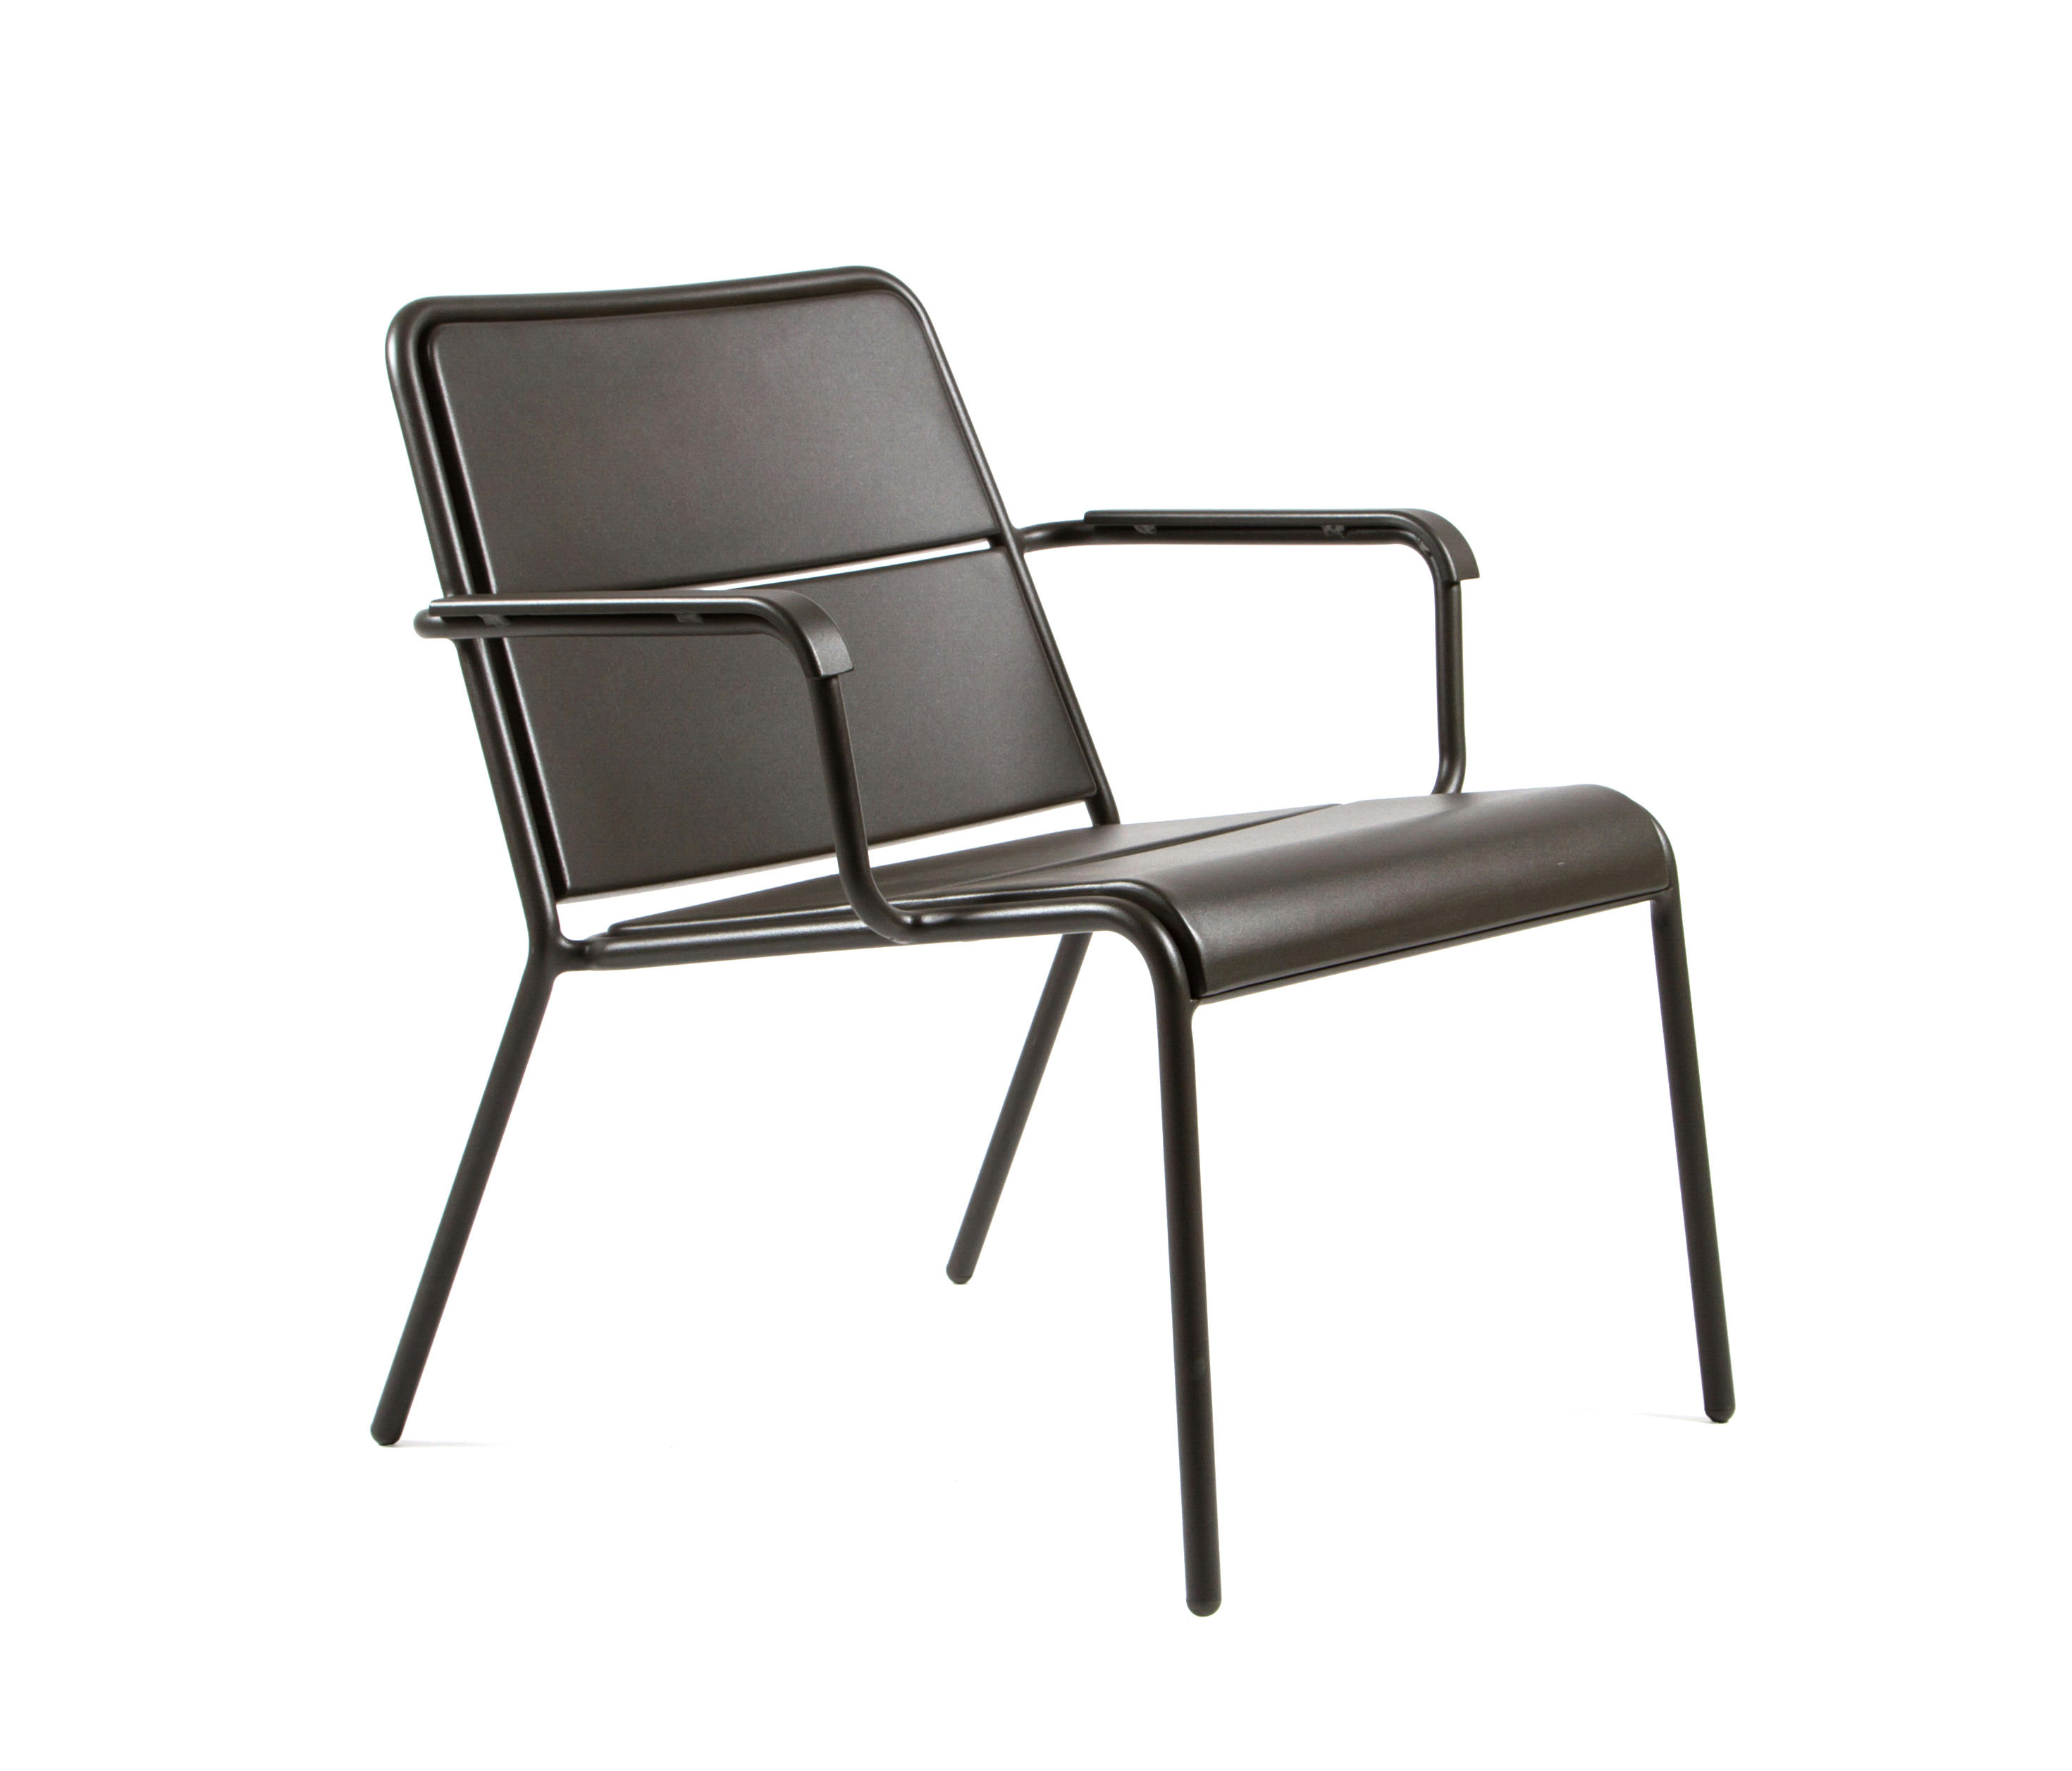 CP9100 Low Armchair & designer furniture | Architonic